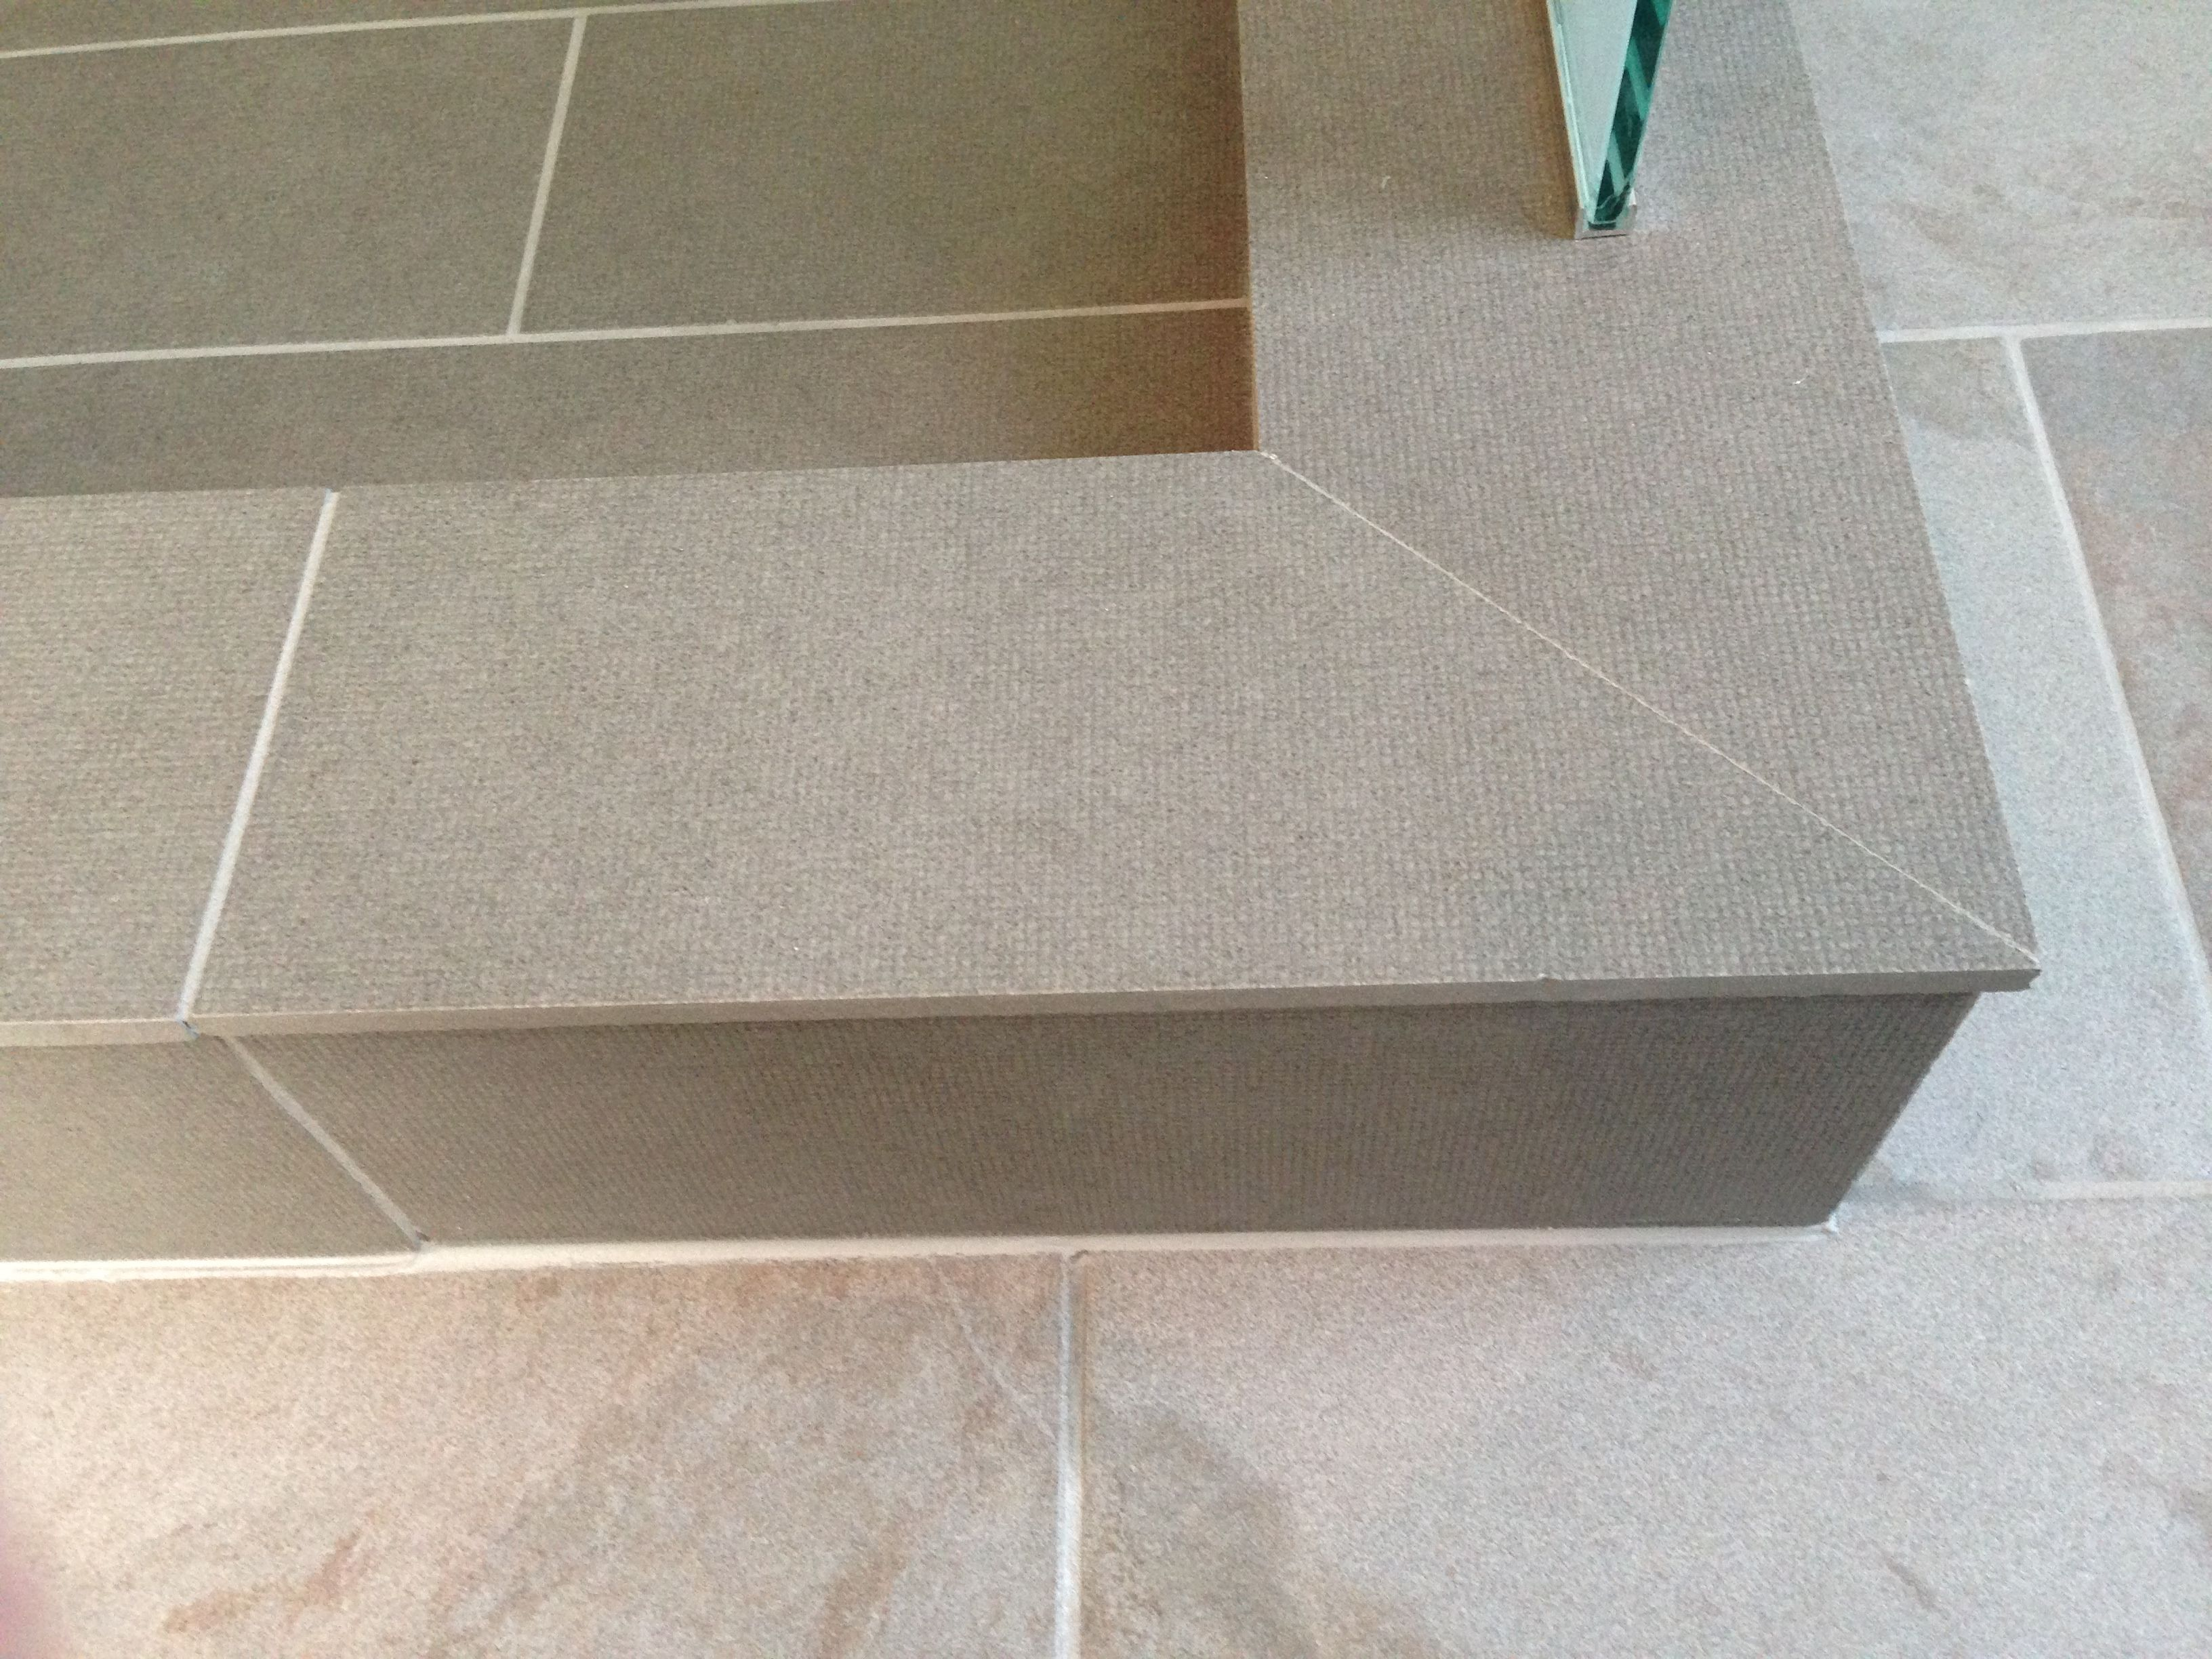 Mitre Of Outside Corner Of Shower Curb Shower Curb Tile Edge Allure Vinyl Plank Flooring